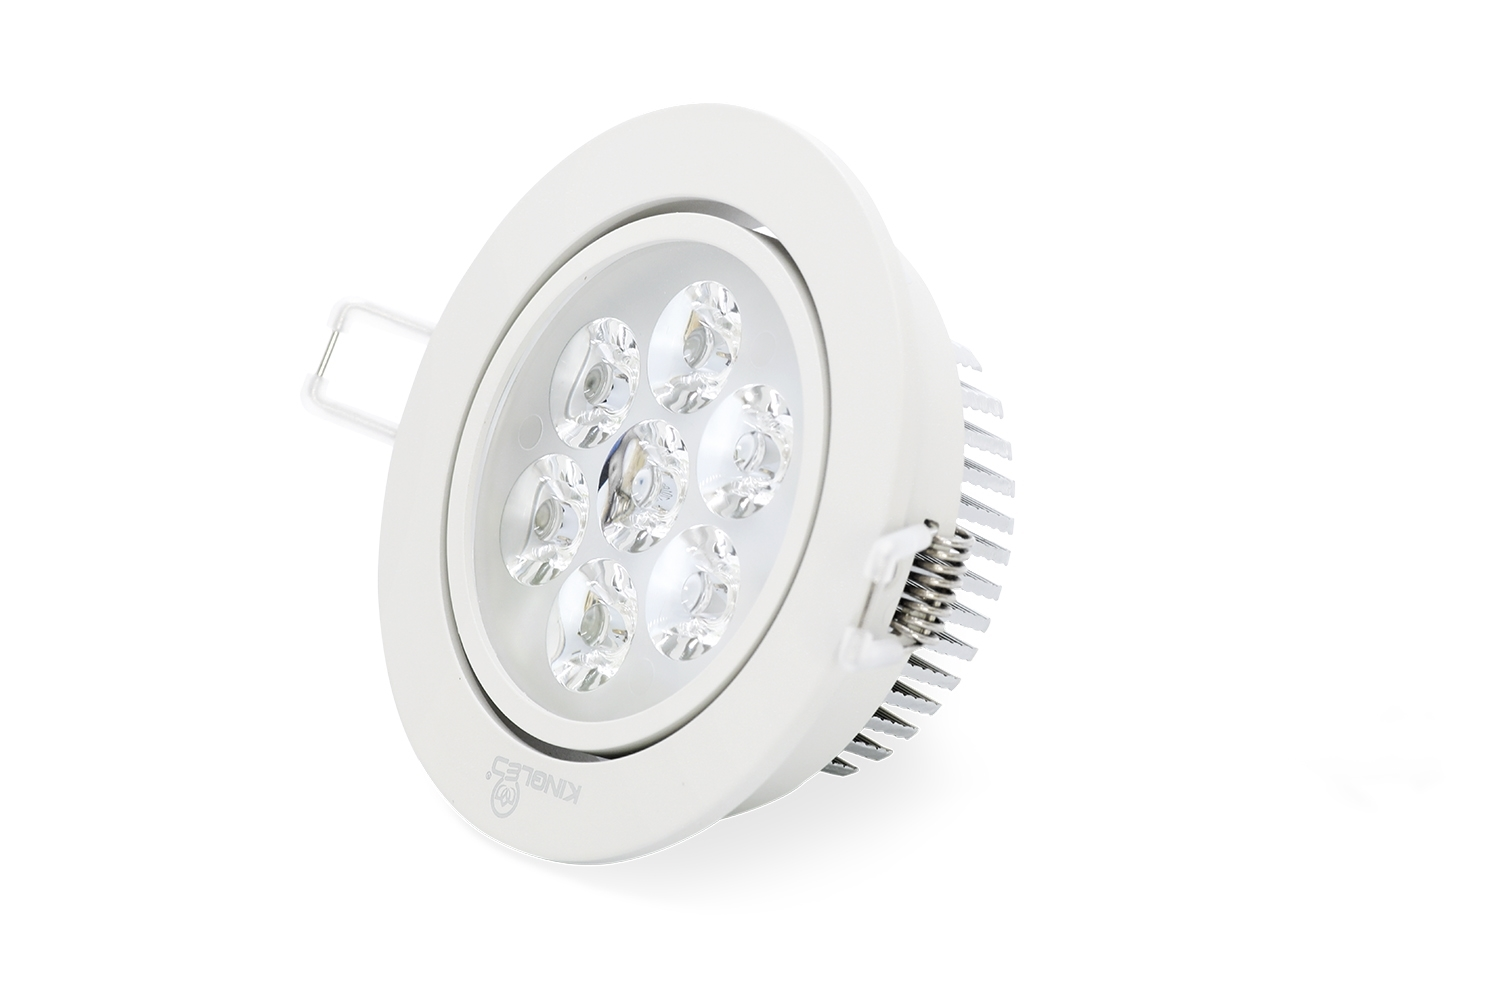 Đèn LED spot light âm trần Kingled DLR-7-T110 series